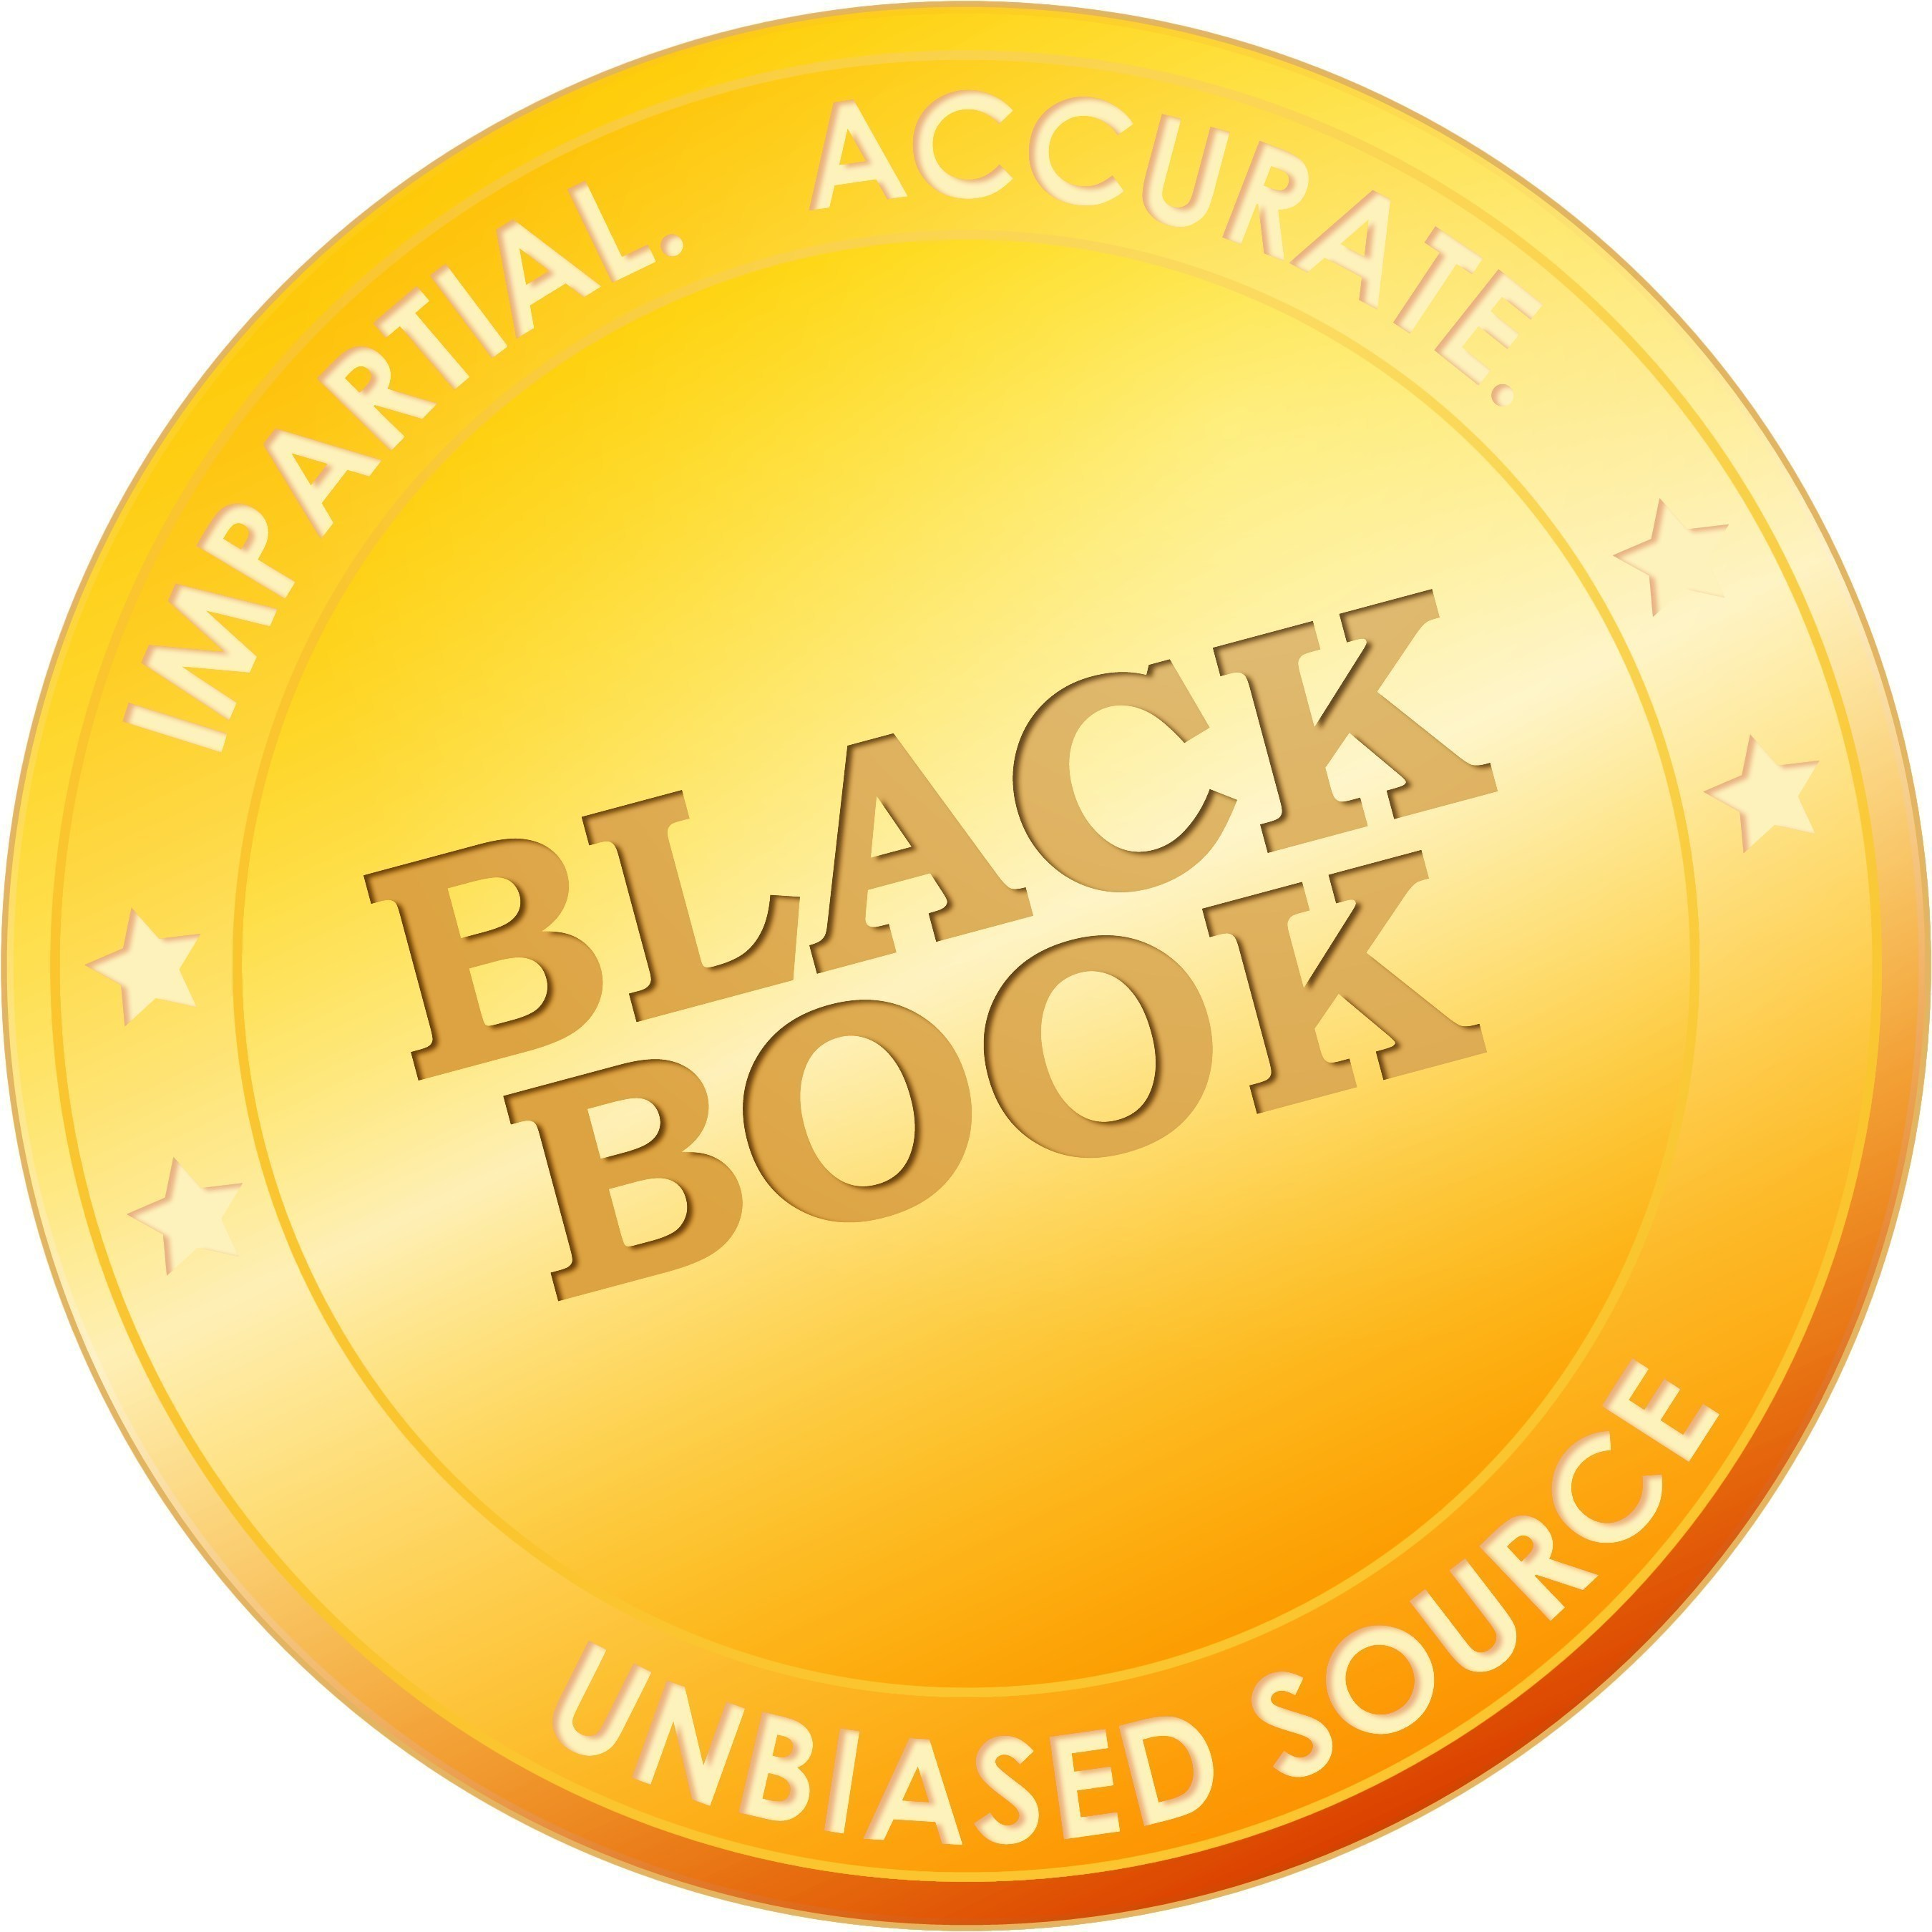 2015 Top Black Book Electronic Health Records (EHR) Systems Announced for Orthopedic Surgery